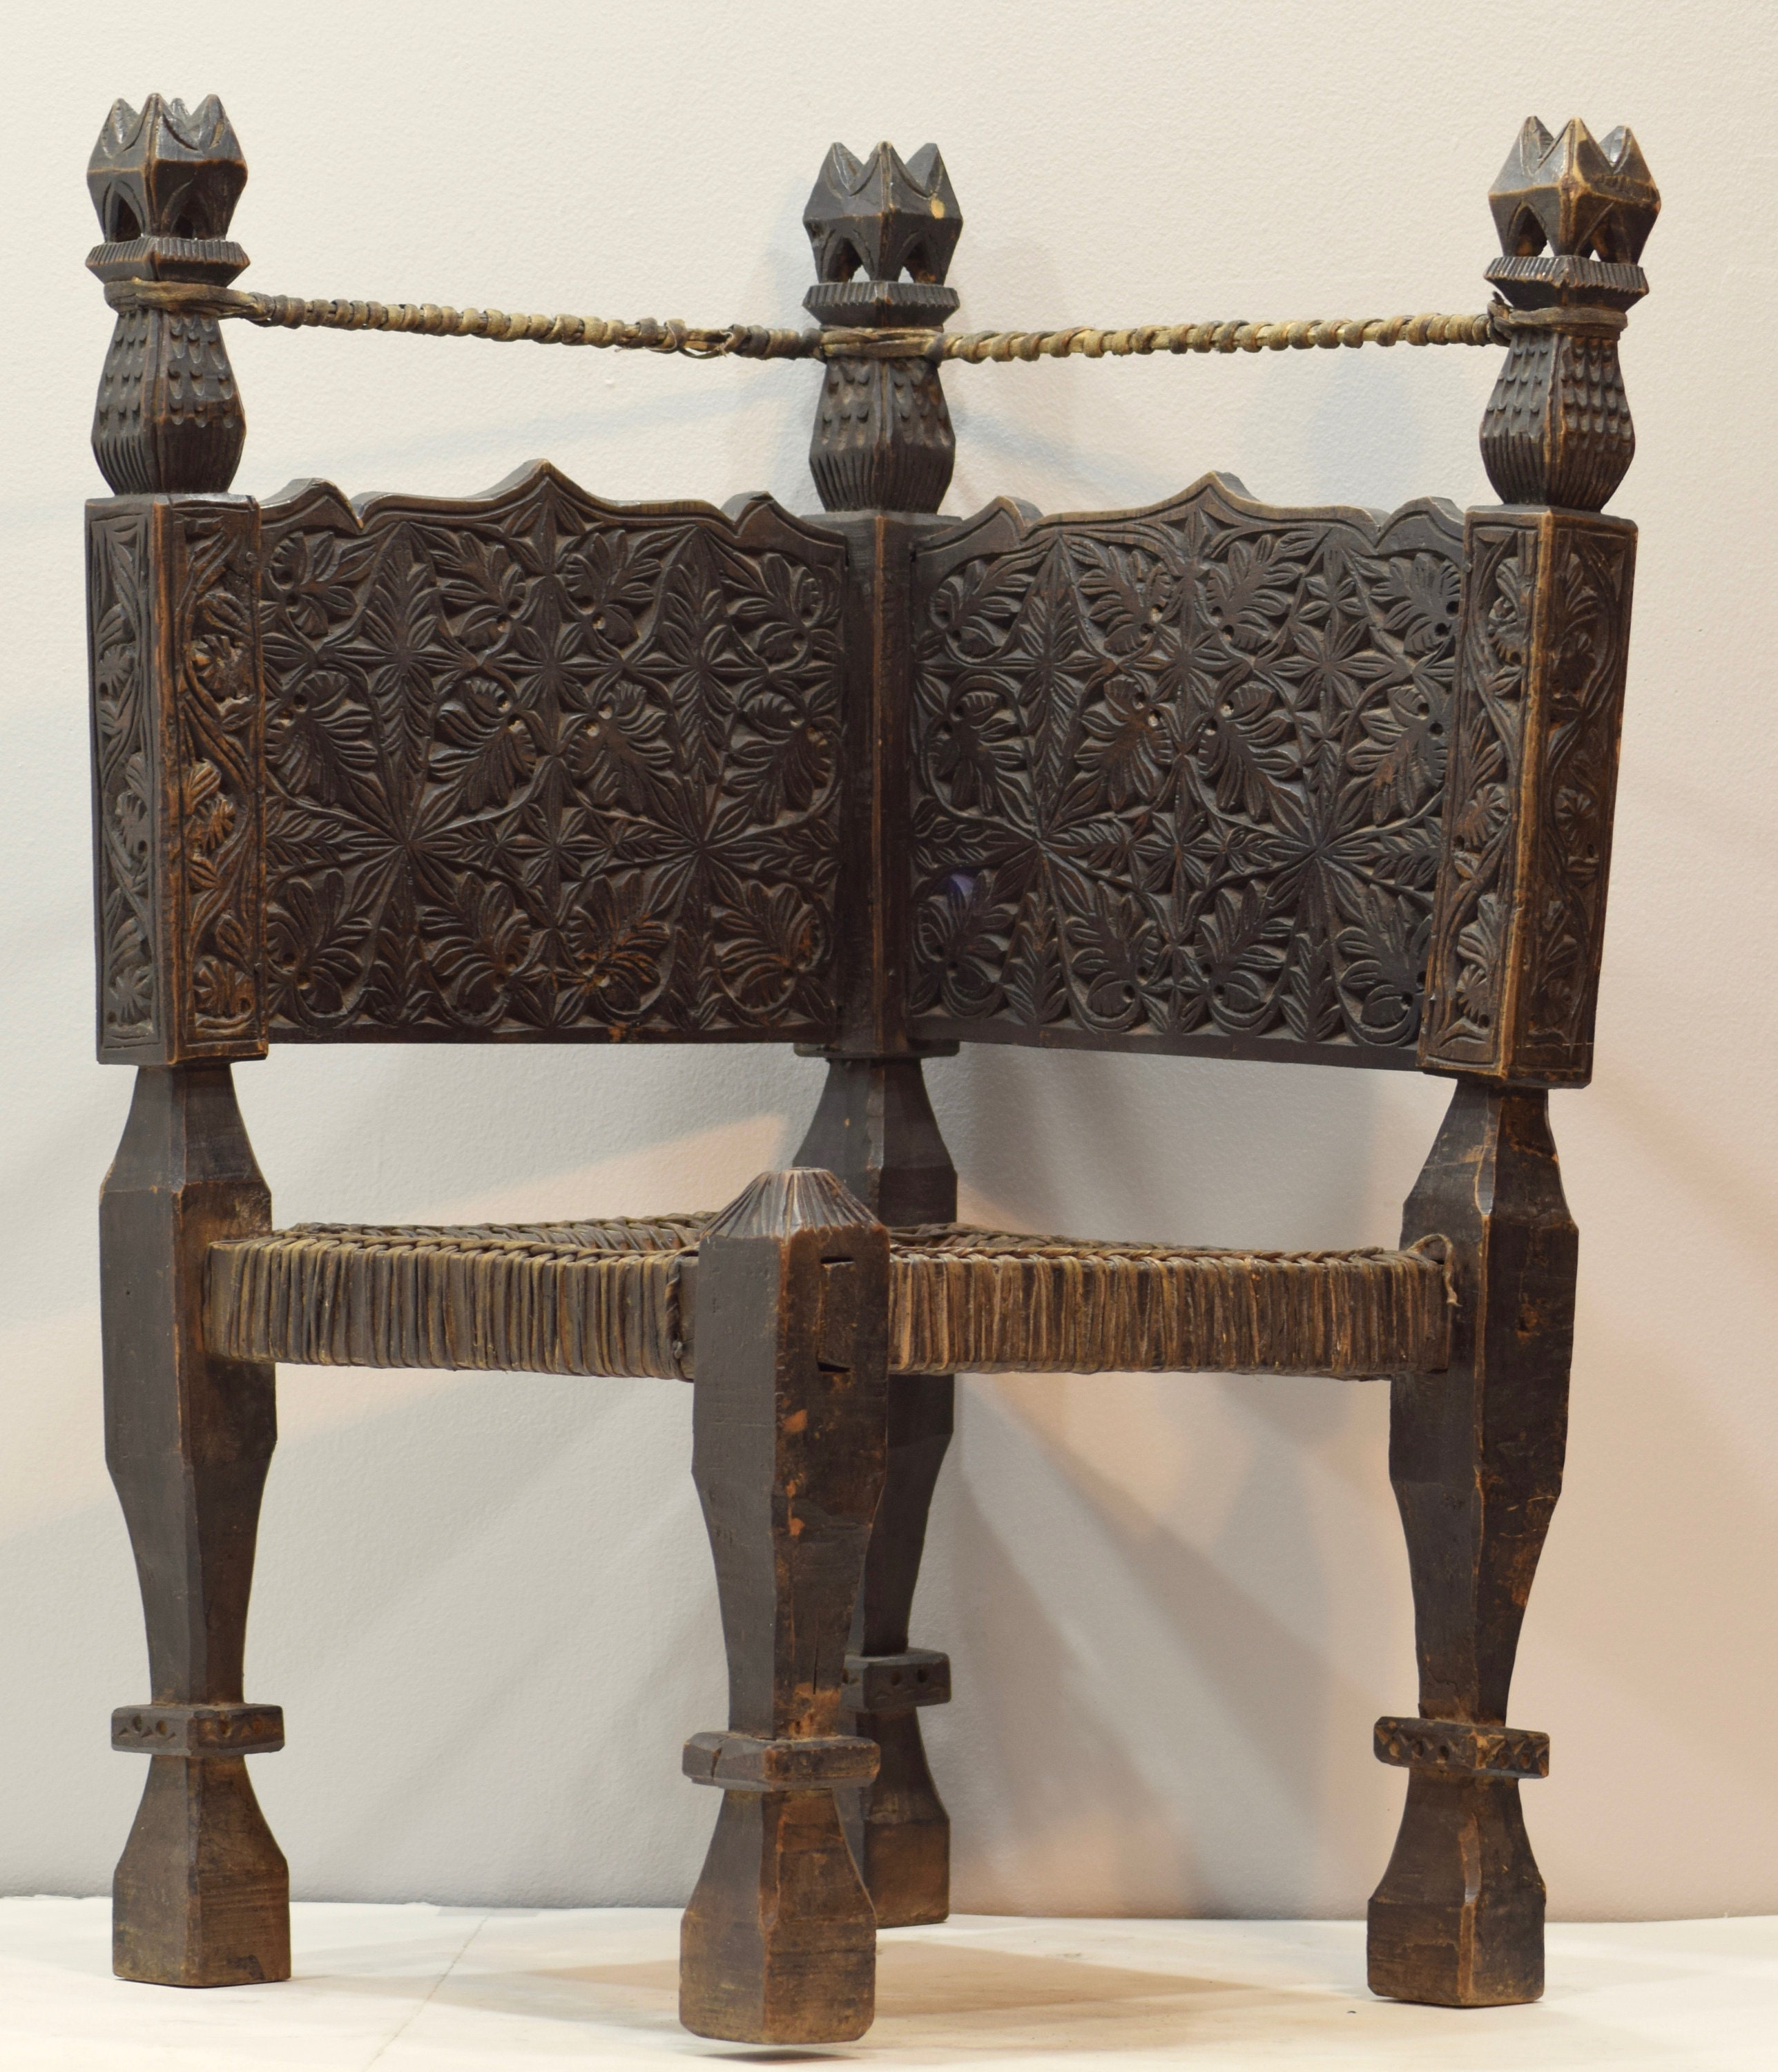 Bon Chair Middle Eastern Swat Valley Double Sided Wood Carved Handmade Floor  Chair